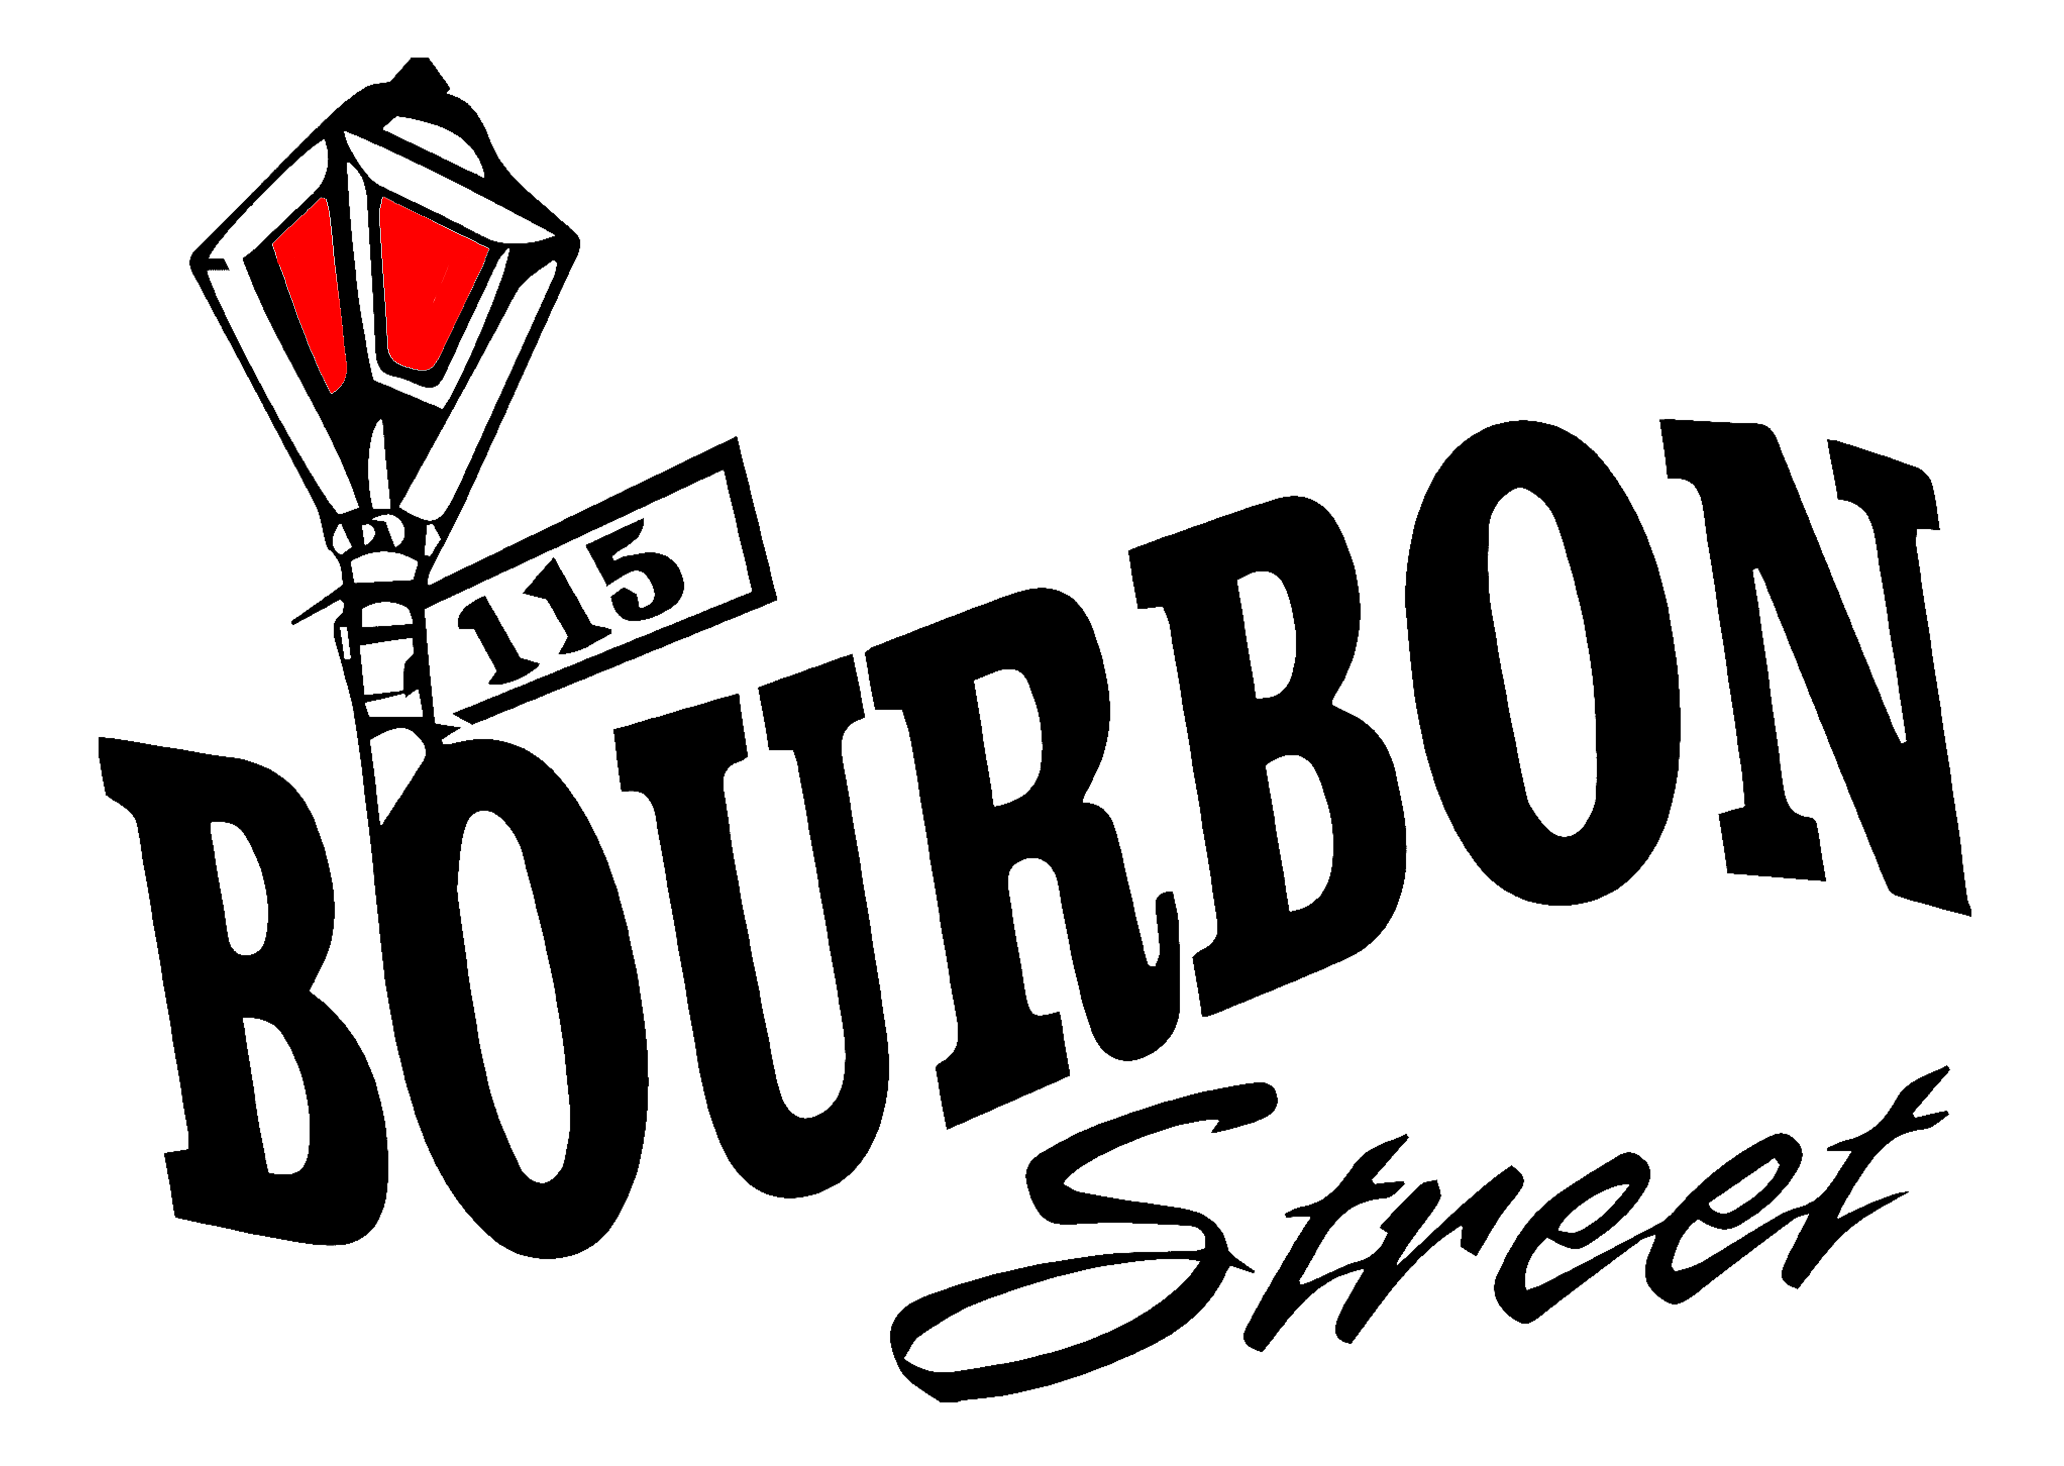 115 Bourbon Street logo with red light